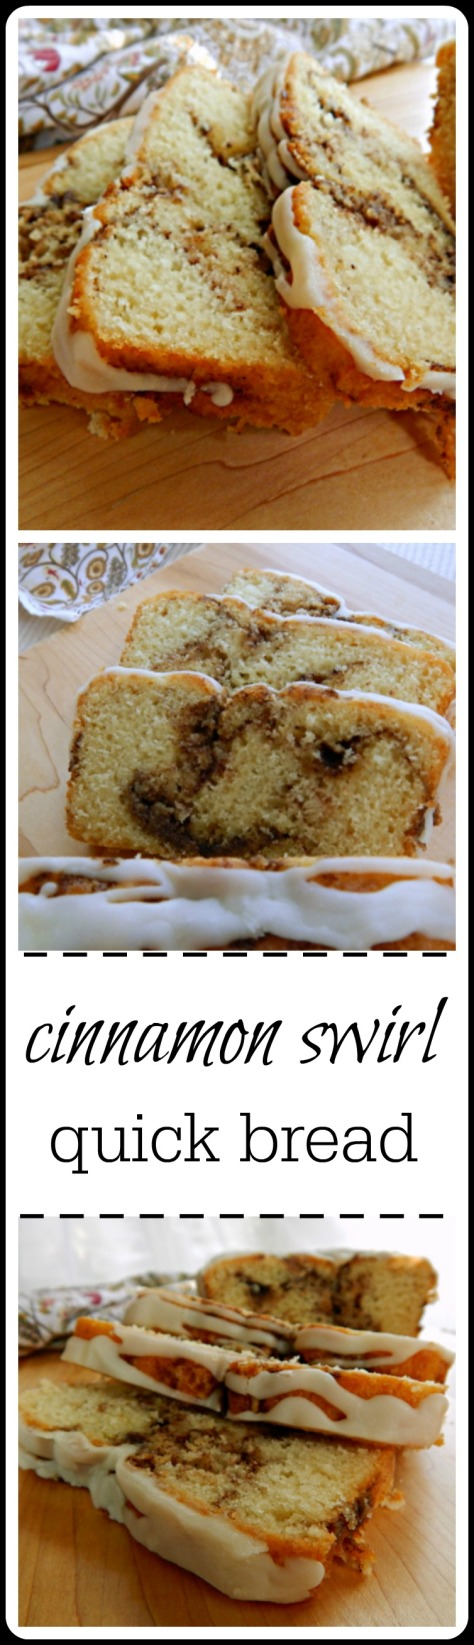 This Cinnamon Swirl Quick Bread has become a new fave at our house - maybe at yours, too?